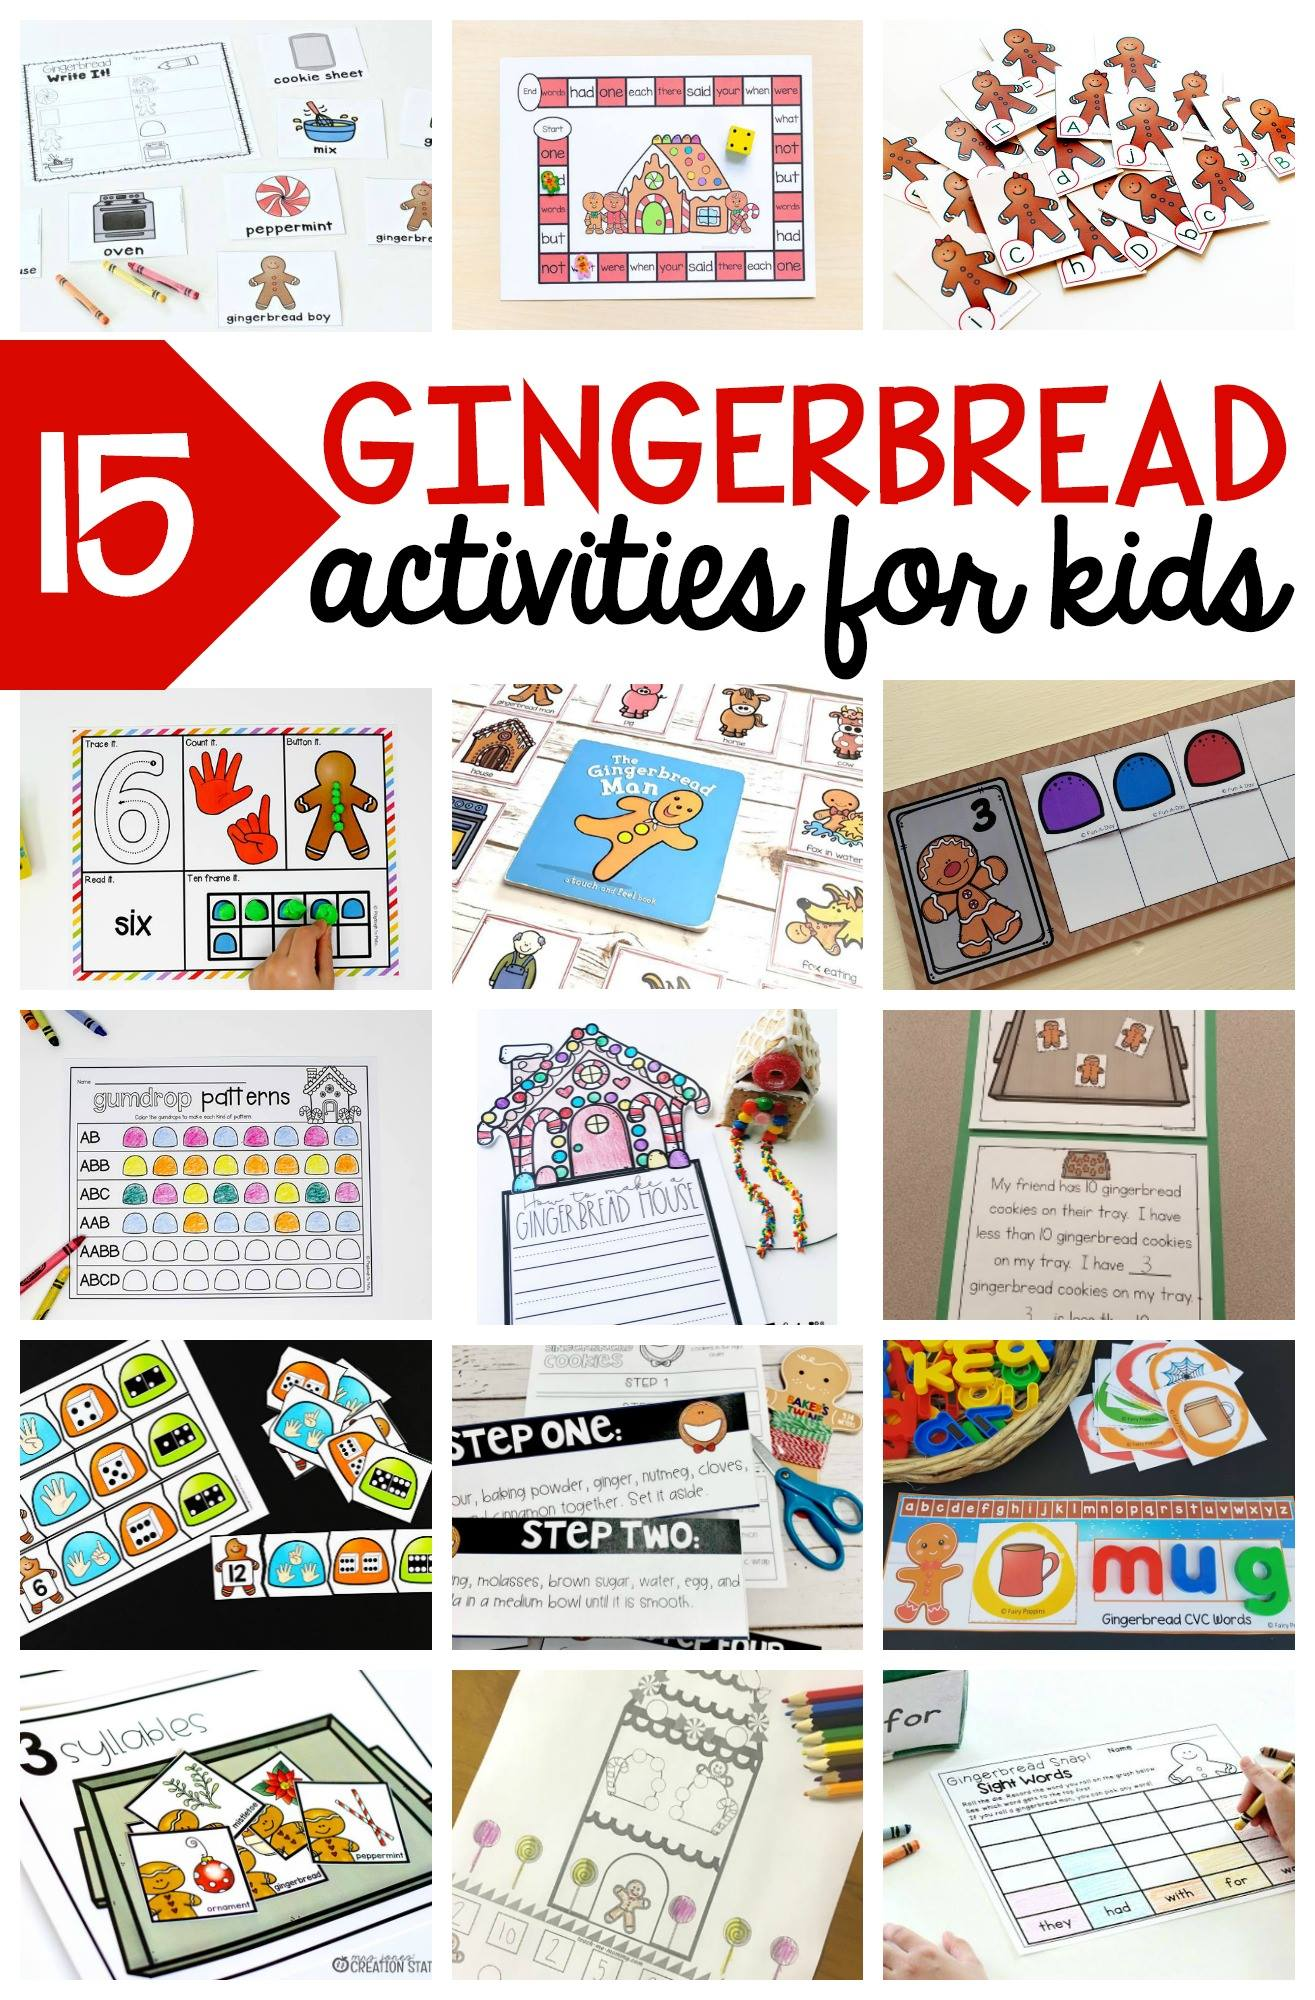 gingerbread activities for Kindergarten